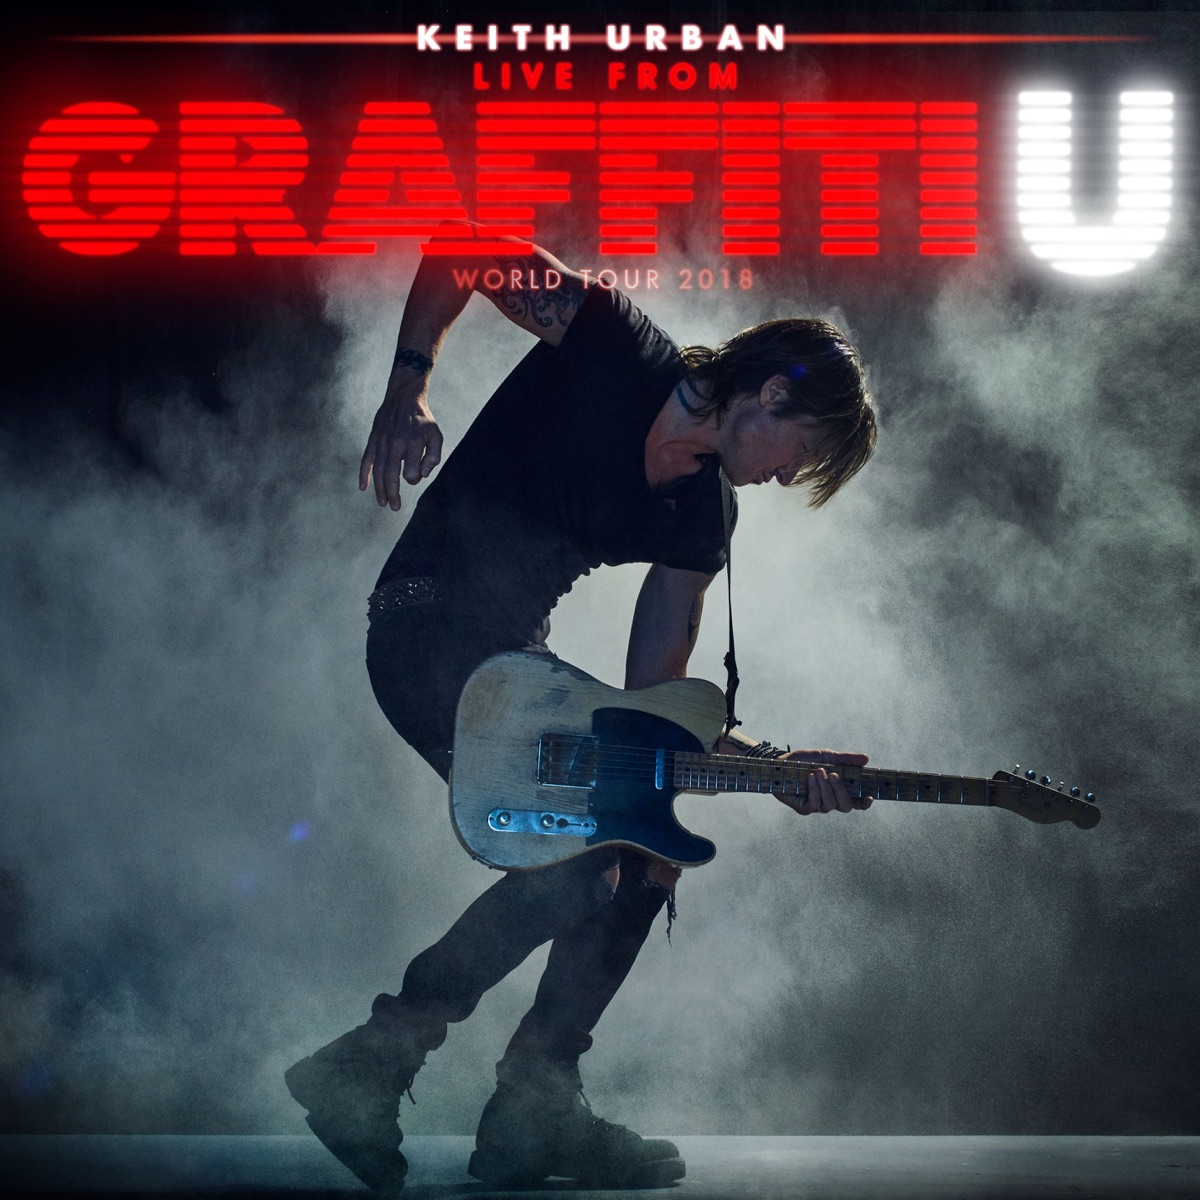 Little Bit of Everything Live from Mountain View CA  July 20 2018 - Single Keith Urban CD cover